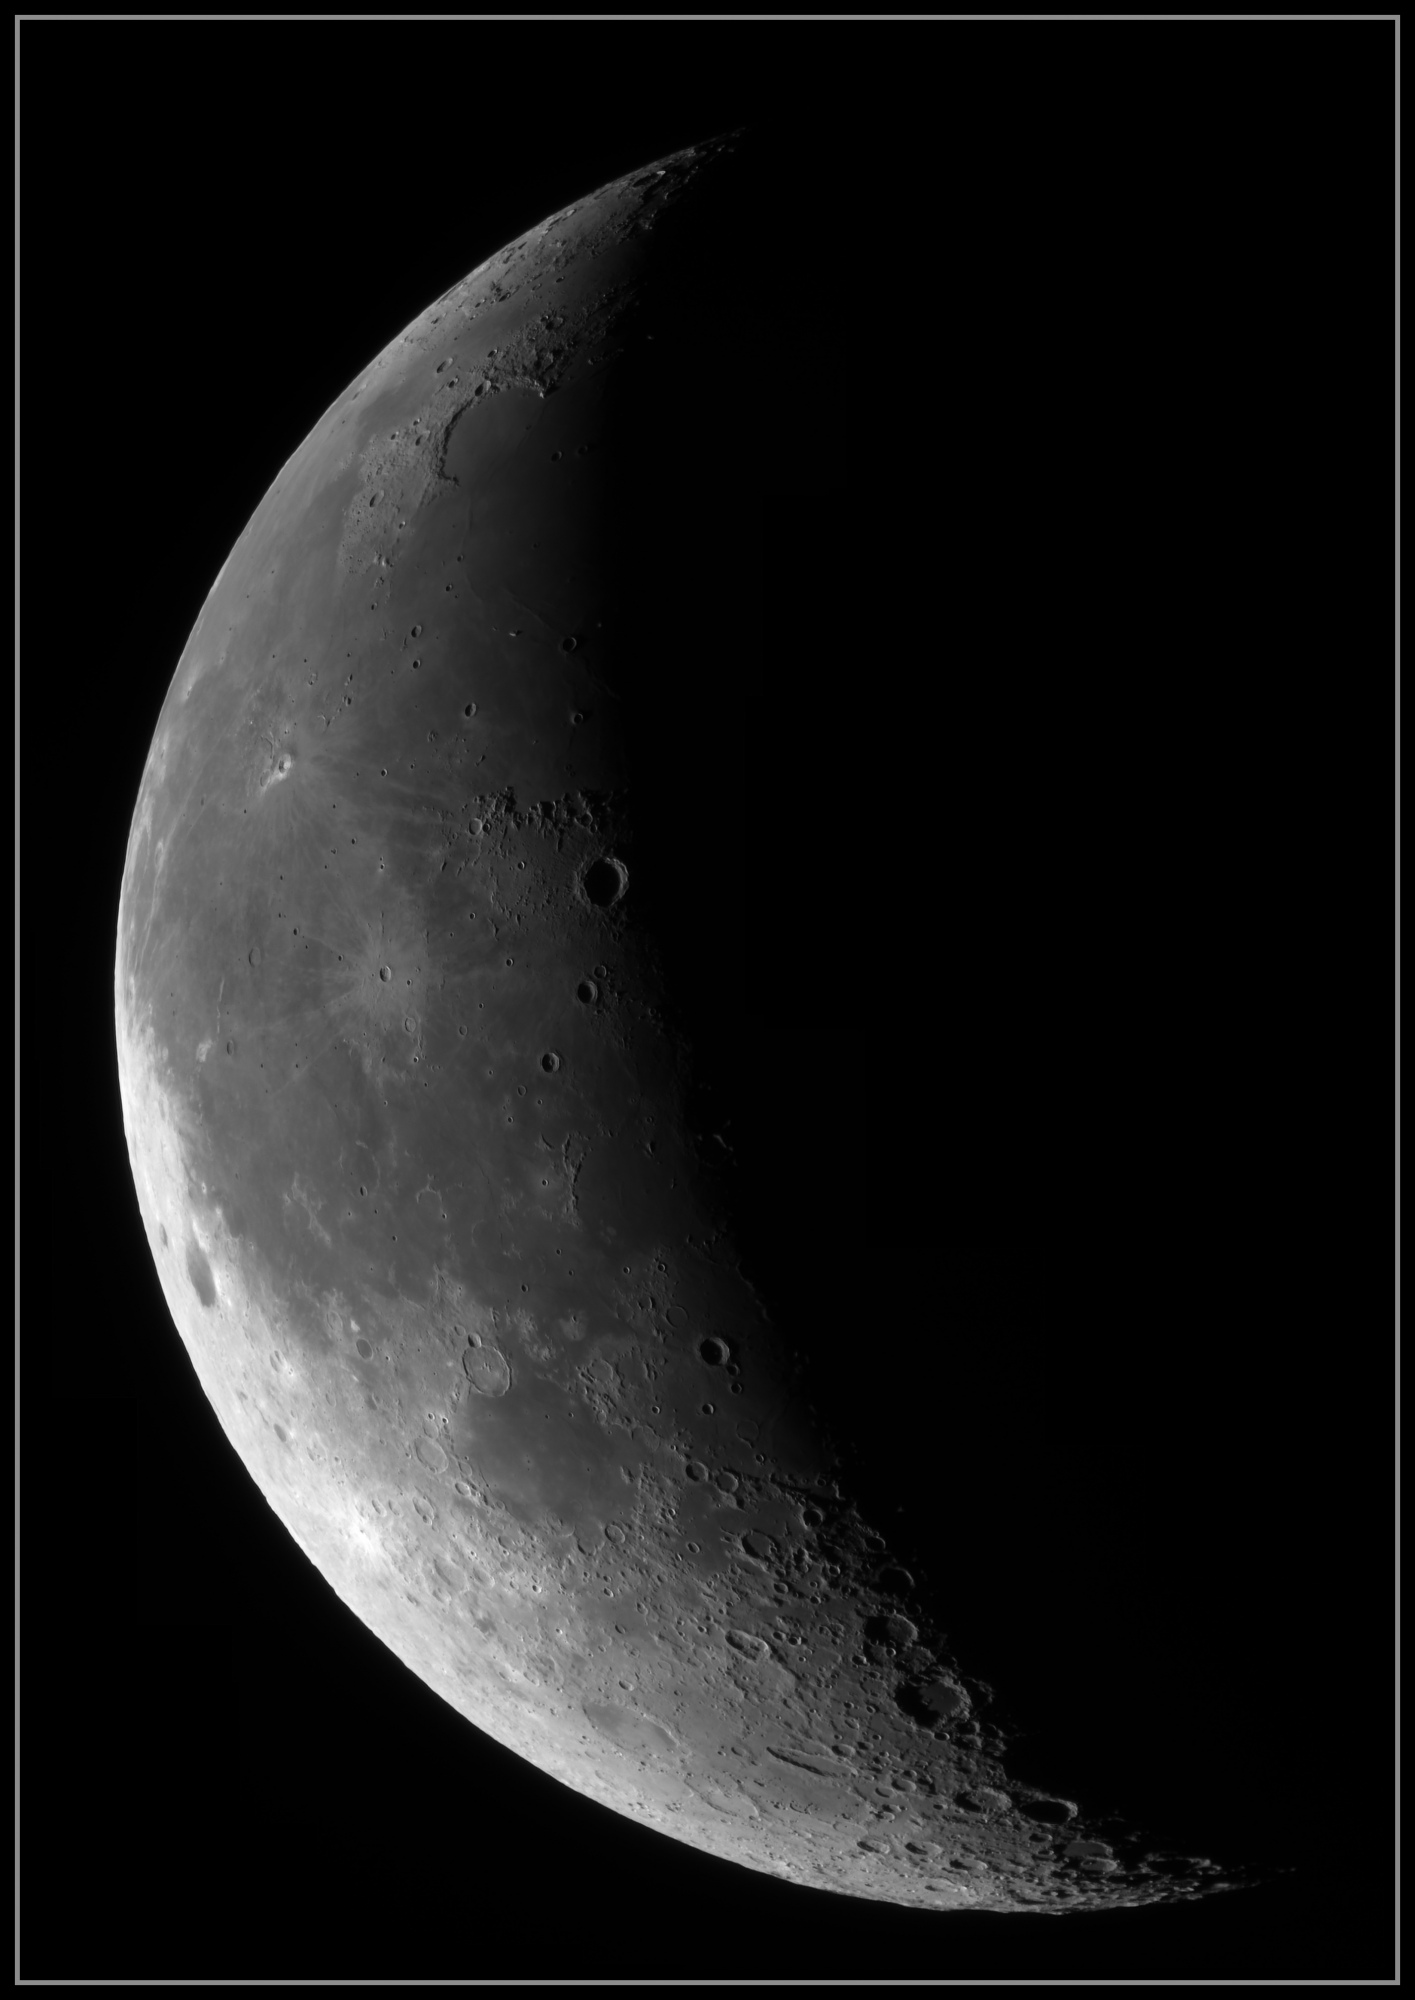 5e28a082b067e_Moon_074606_190120_ZWOASI290MM_IR_742nm_AS_P25_lapl6_ap151_stitch.thumb.jpg.dd6f55a263fccd42fc0bcf90209ef038.jpg